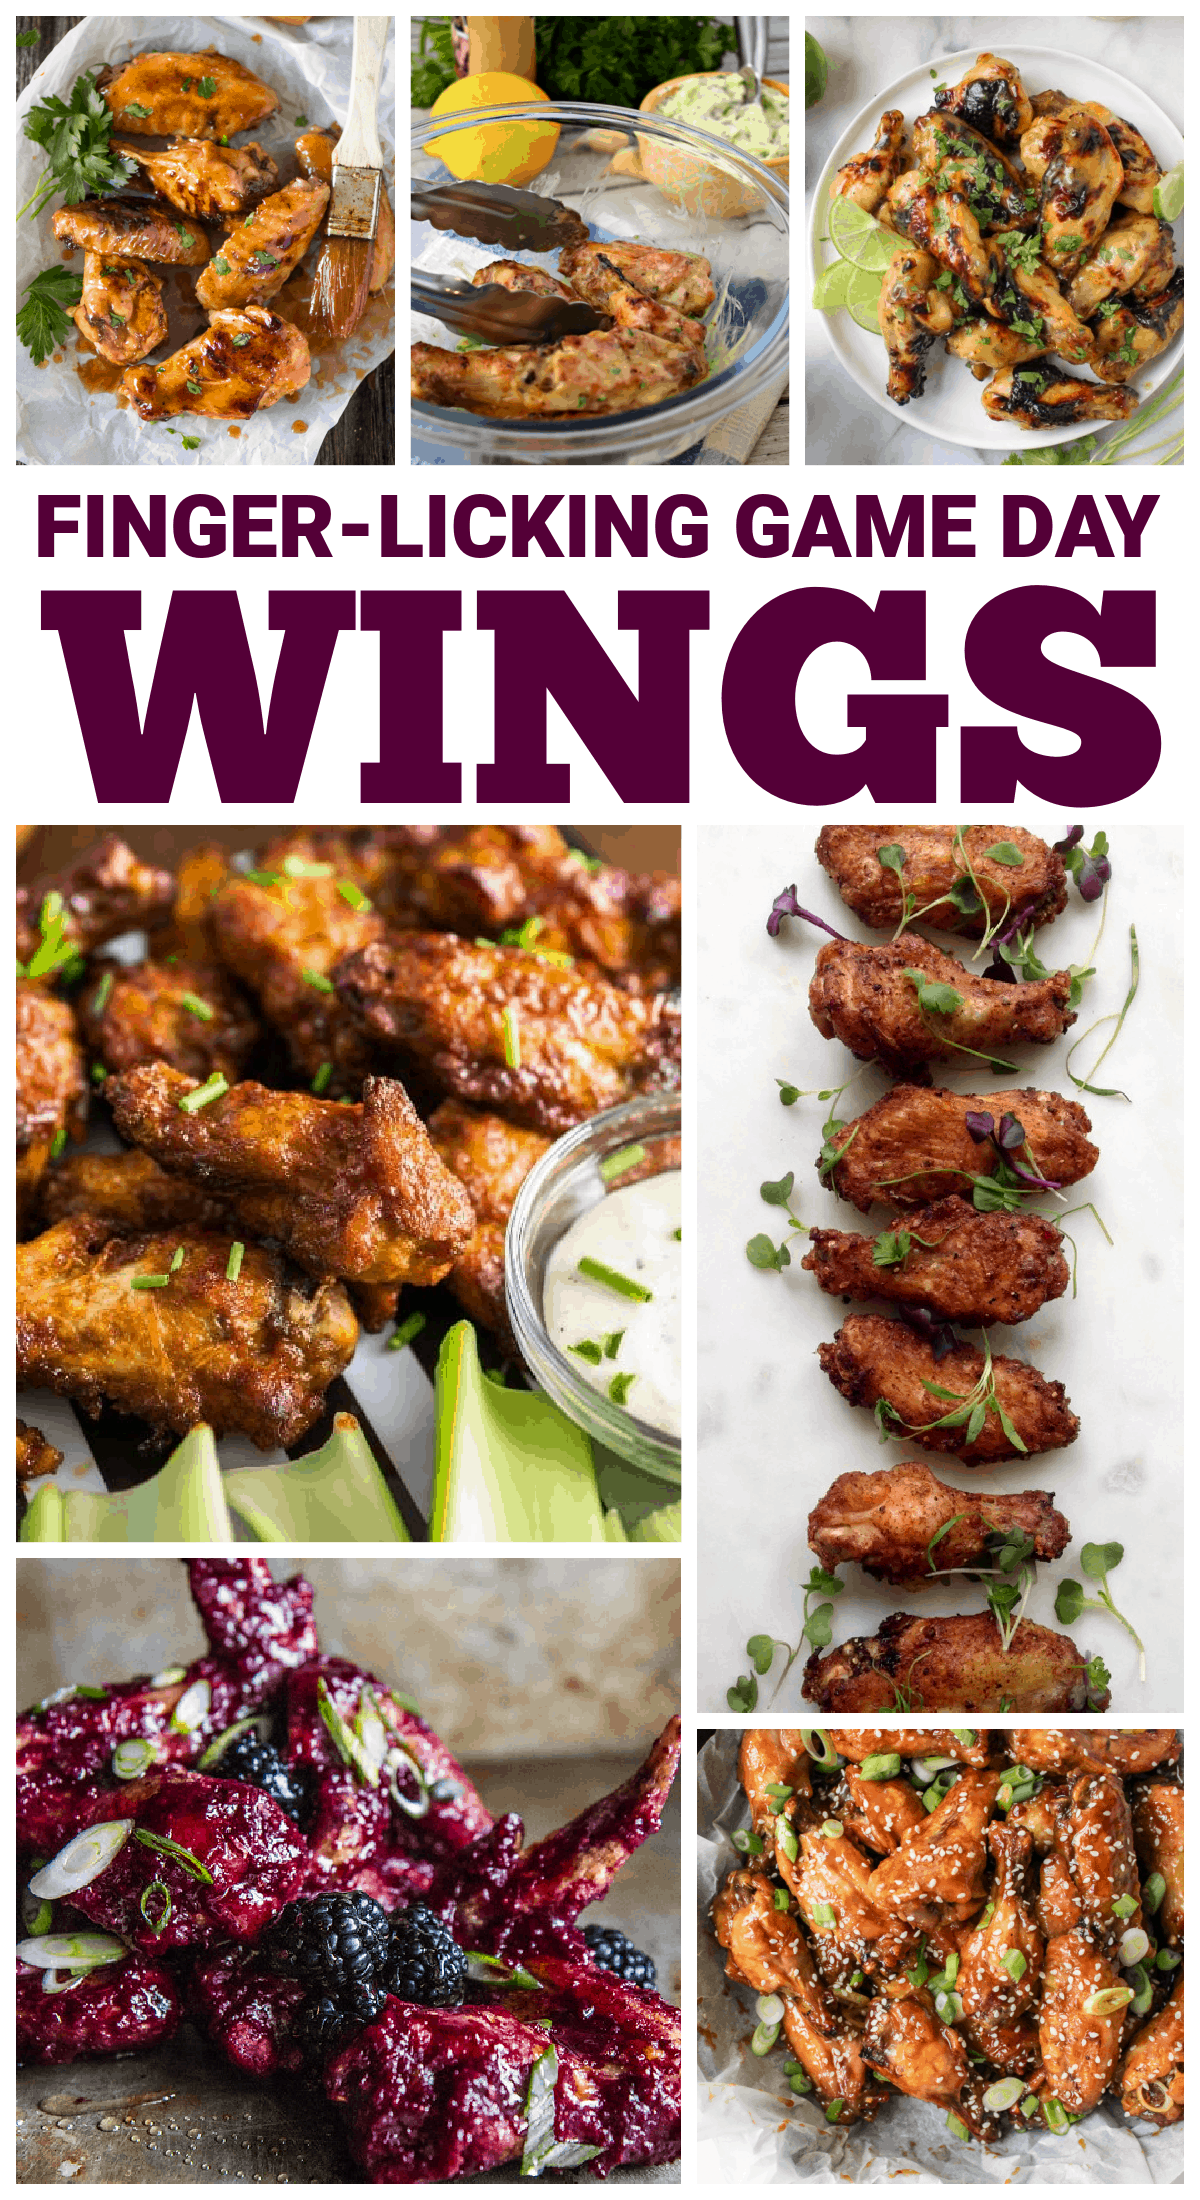 Whether you like a hint of sweet or a touch of spice, we have tons of crowd-pleasing, finger-licking delicious game day wings to choose from! via @jugglingactmama